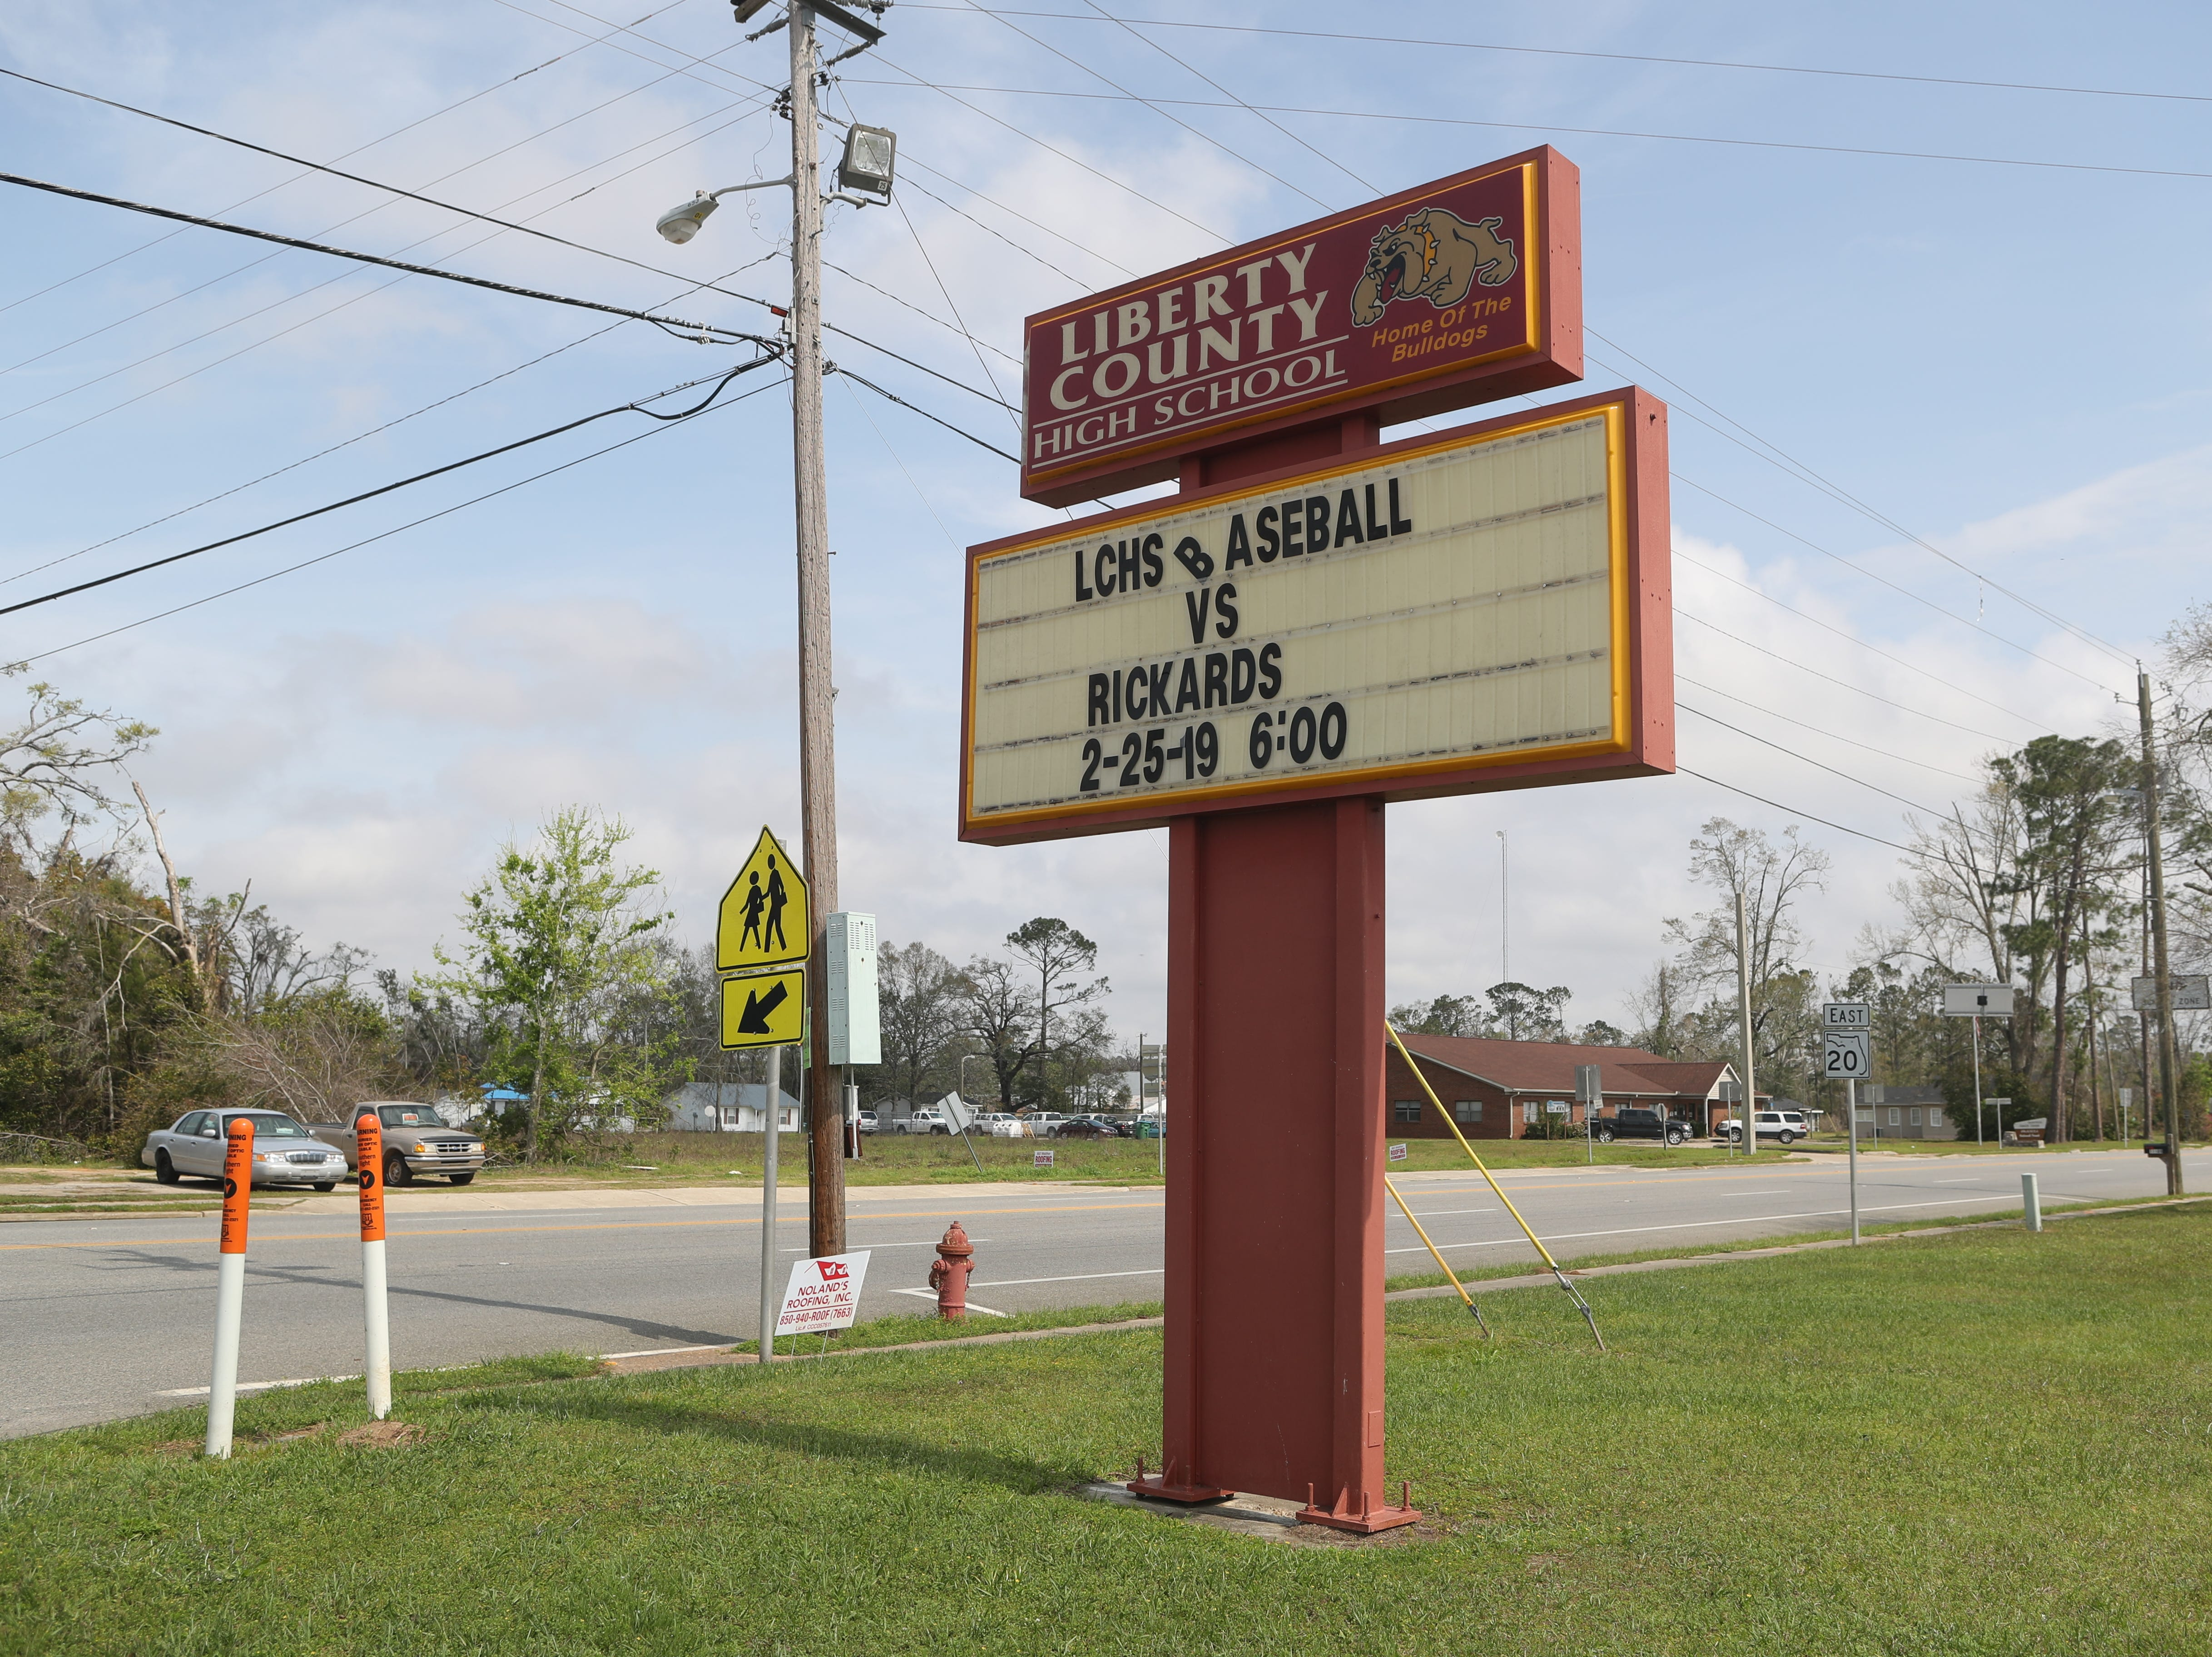 The Liberty County High School sign publicizes a past baseball game versus Rickards Monday morning, less than 24 hours after Corey Crum, head baseball coach, and his wife Shana died at the Liberty County baseball field after being electrocuted Sunday, March 10, 2019.